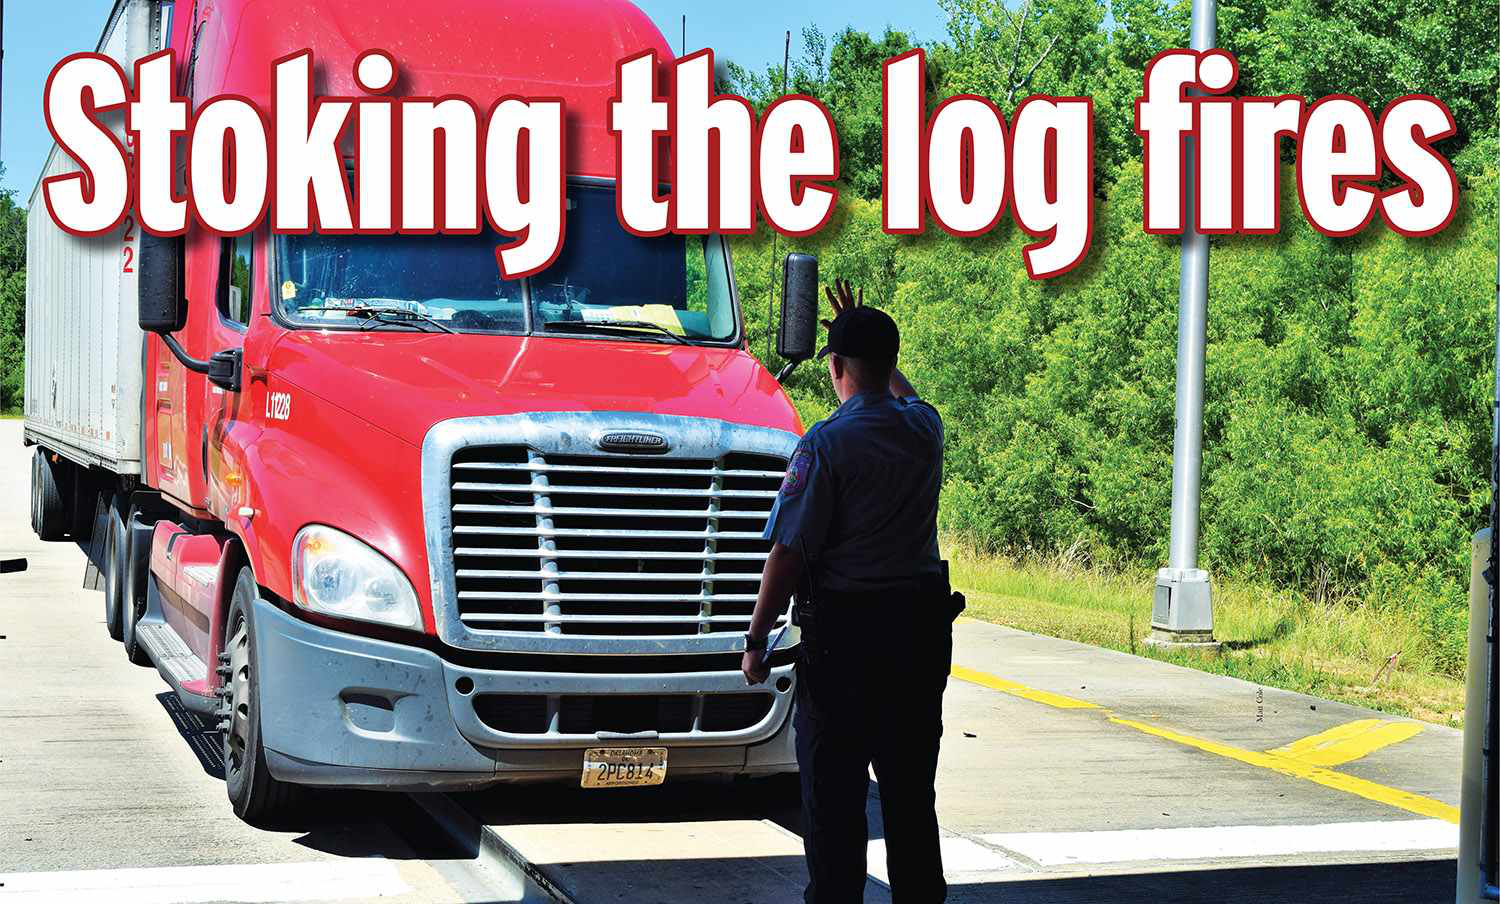 Stoking the log fires: Hours violations, fleet size and ELDs